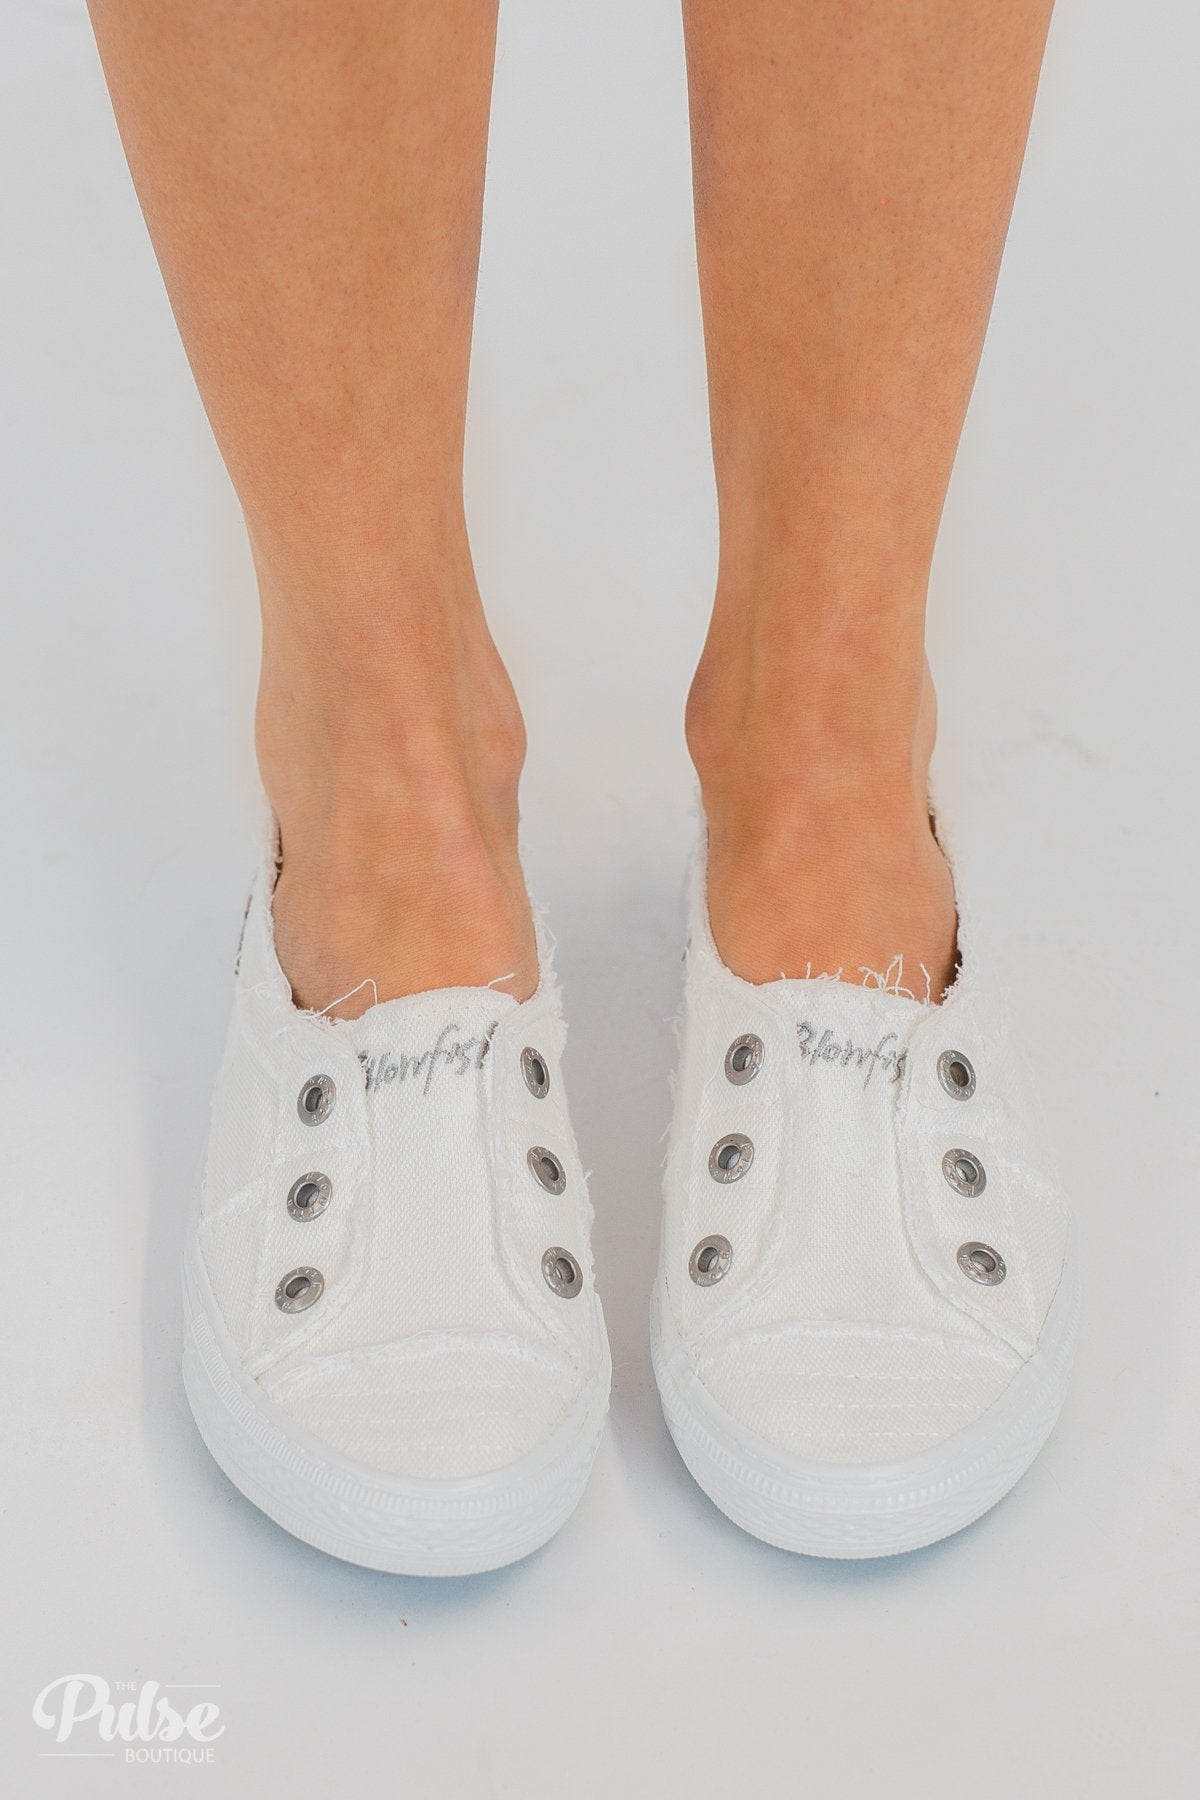 Blowfish Aussie Sneakers- White Smoked